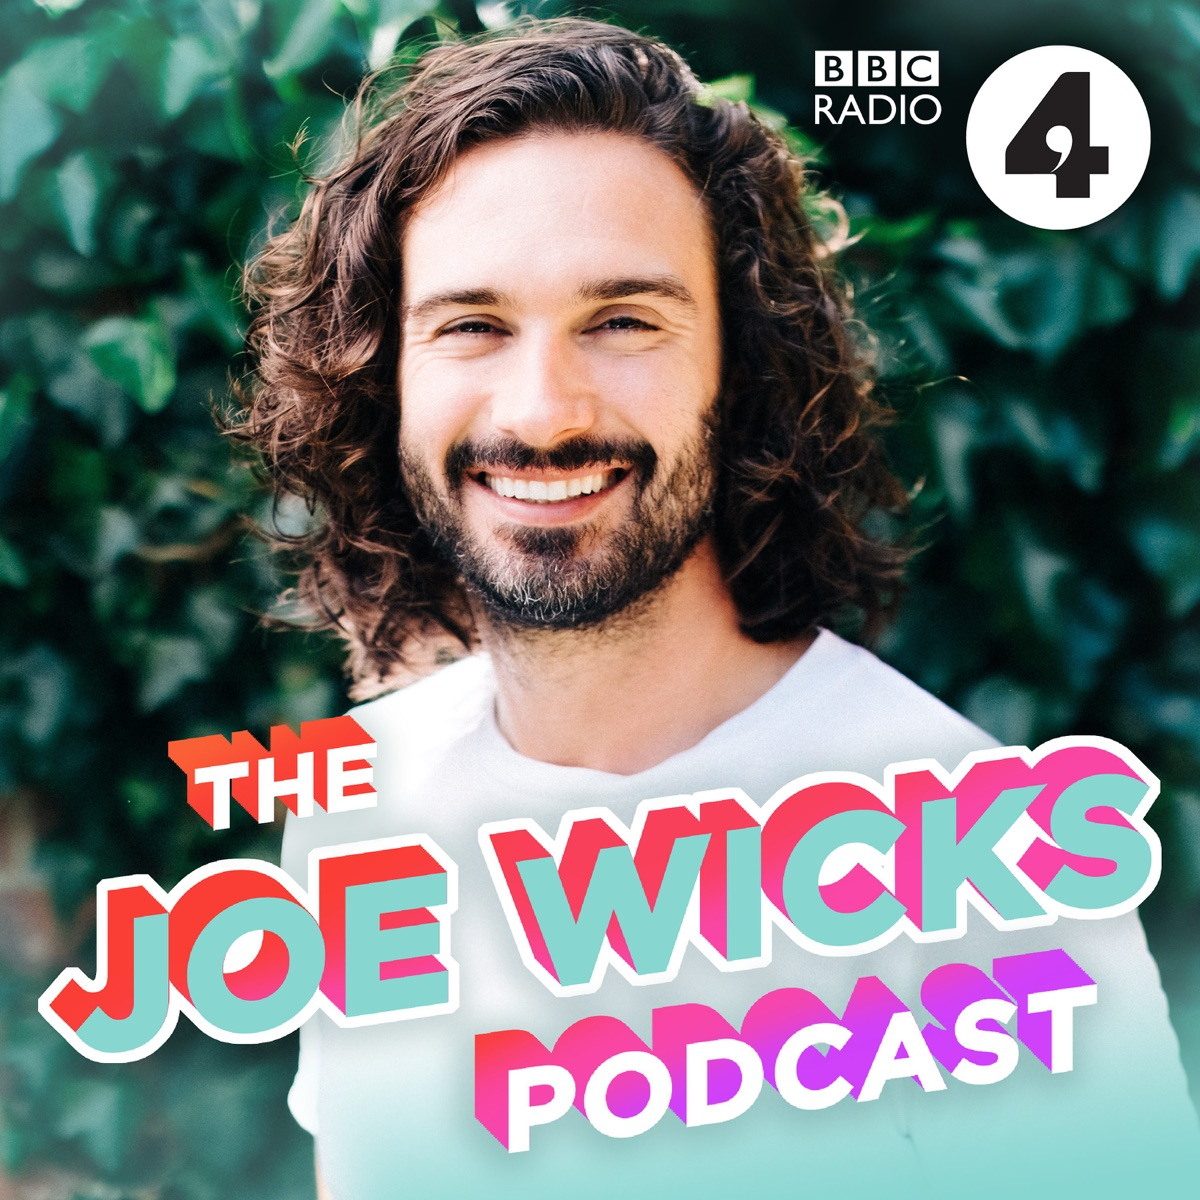 Welcome to The Joe Wicks Podcast